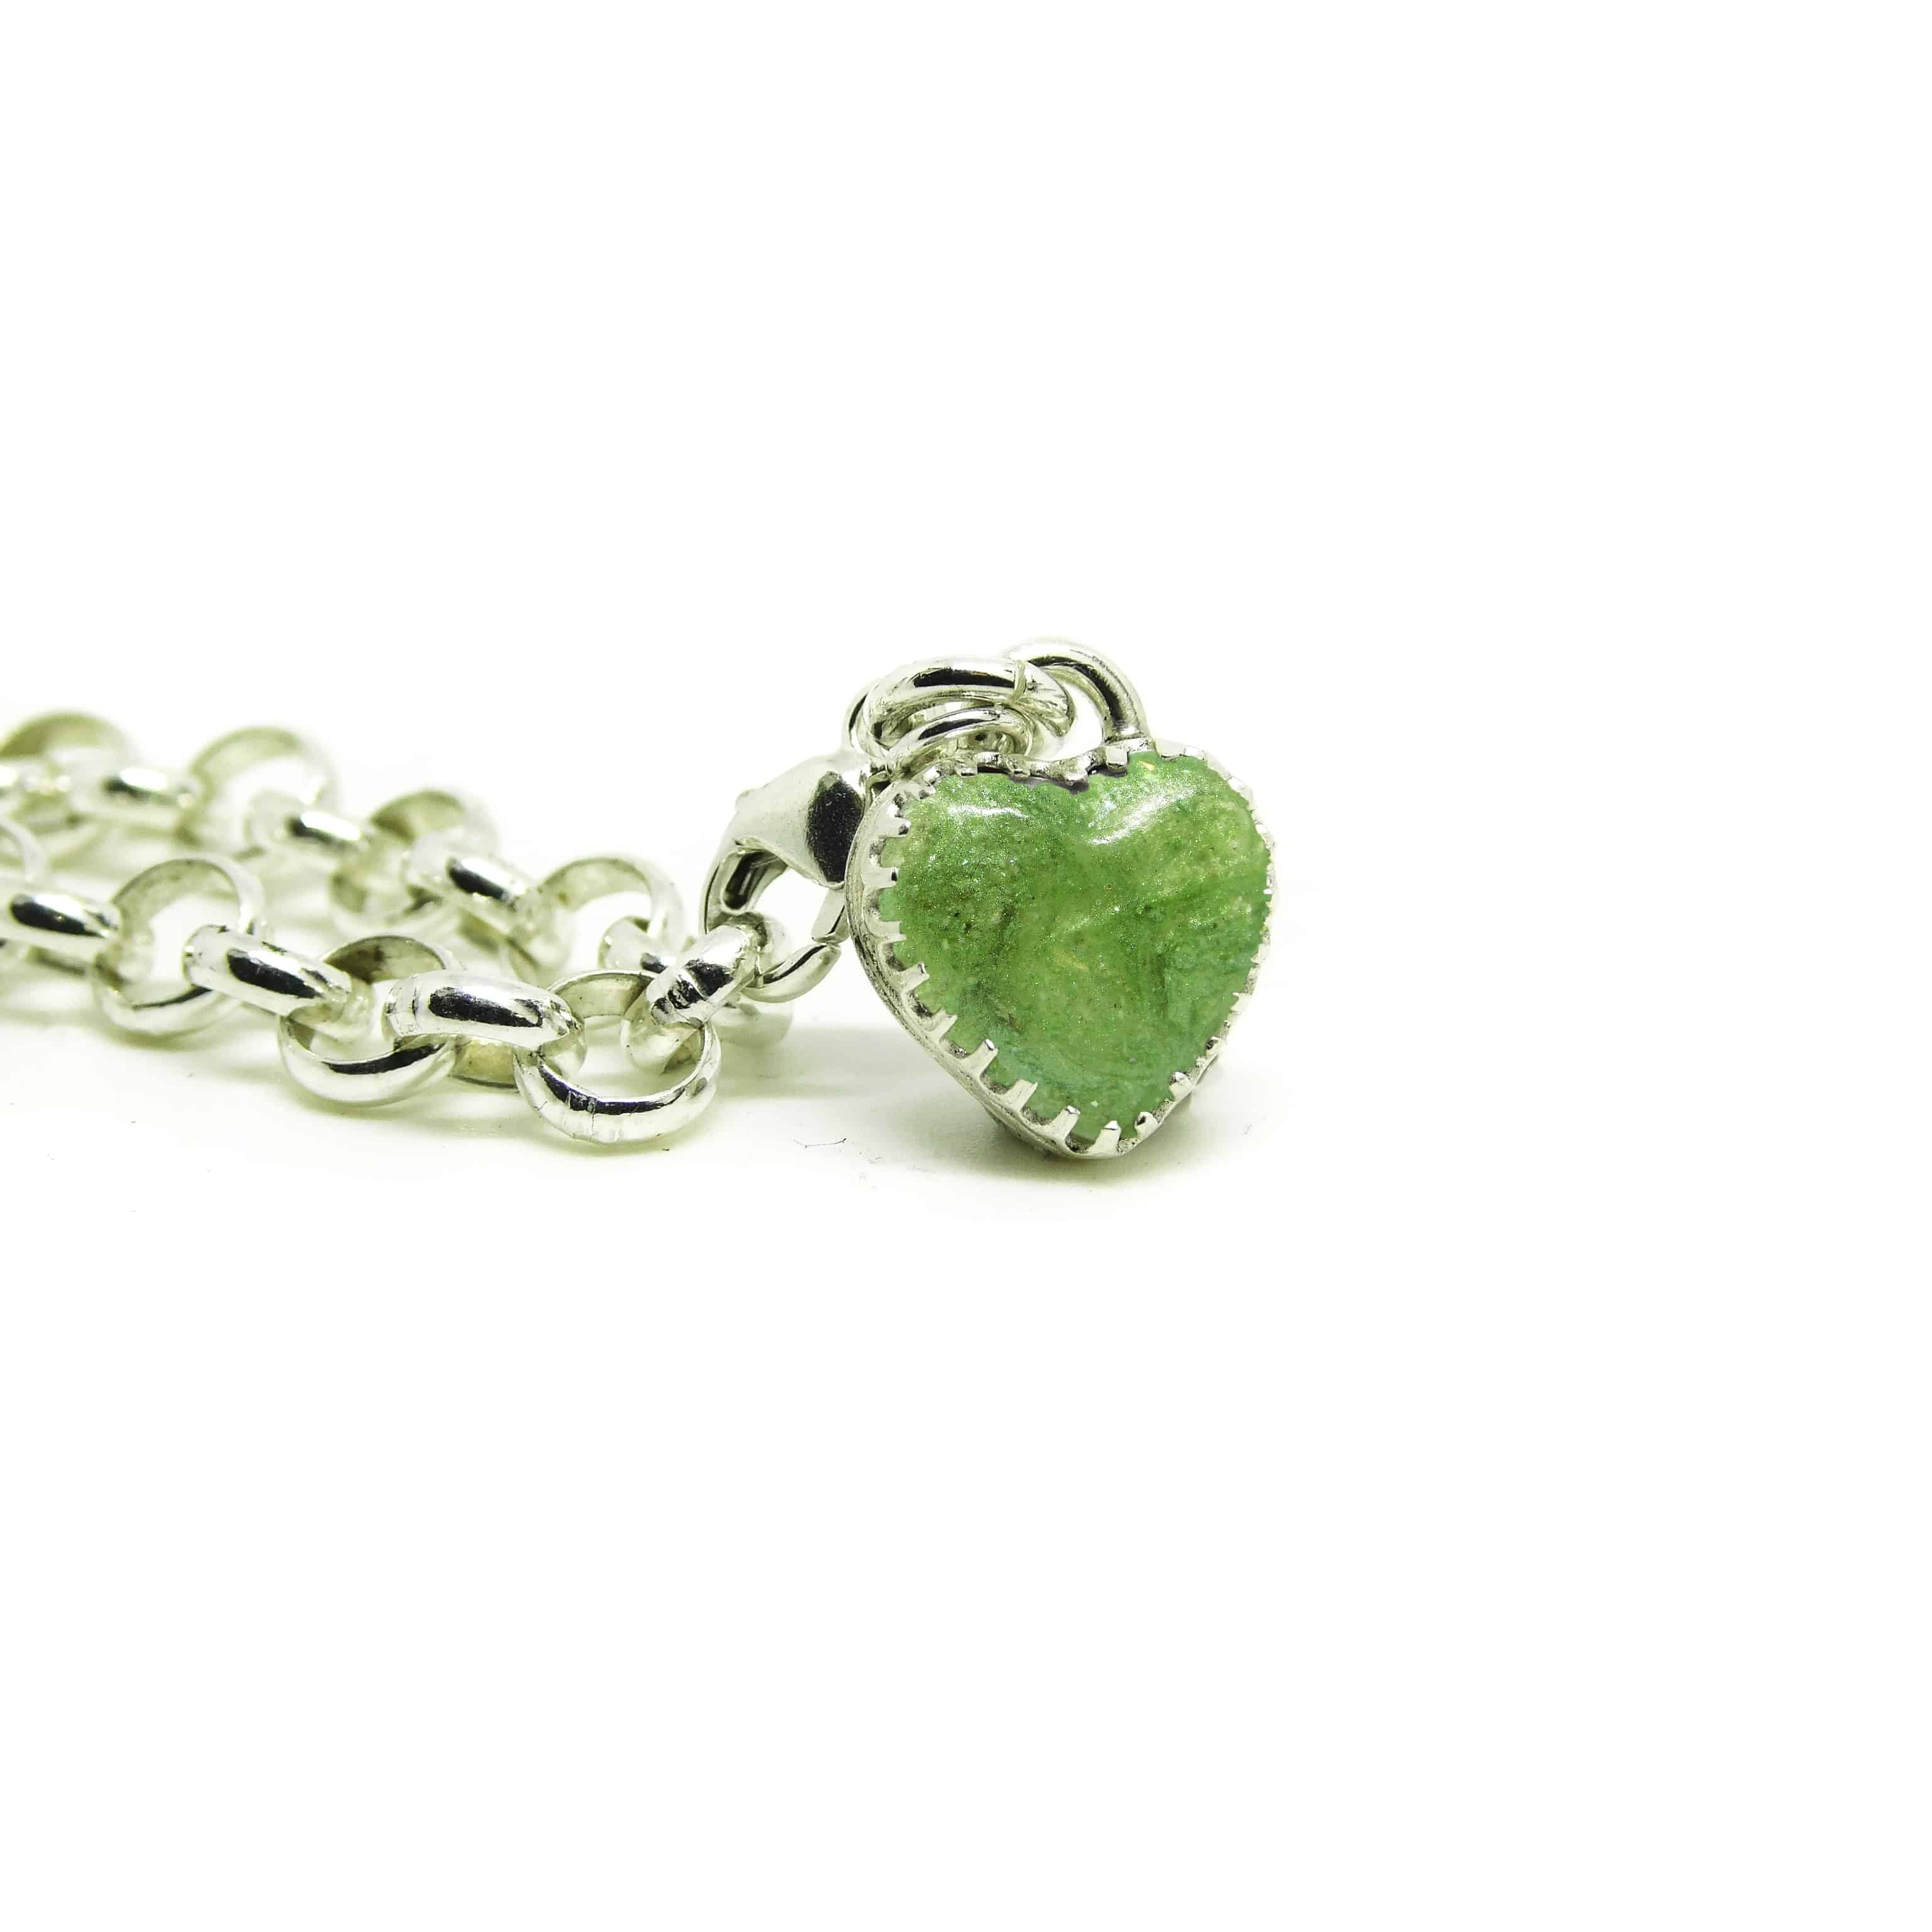 cremation ashes heart charm with basilisk green resin sparkle mix and new style scalloped edge heart. Lobster clasp for large link and Thomas Sabo bracelets